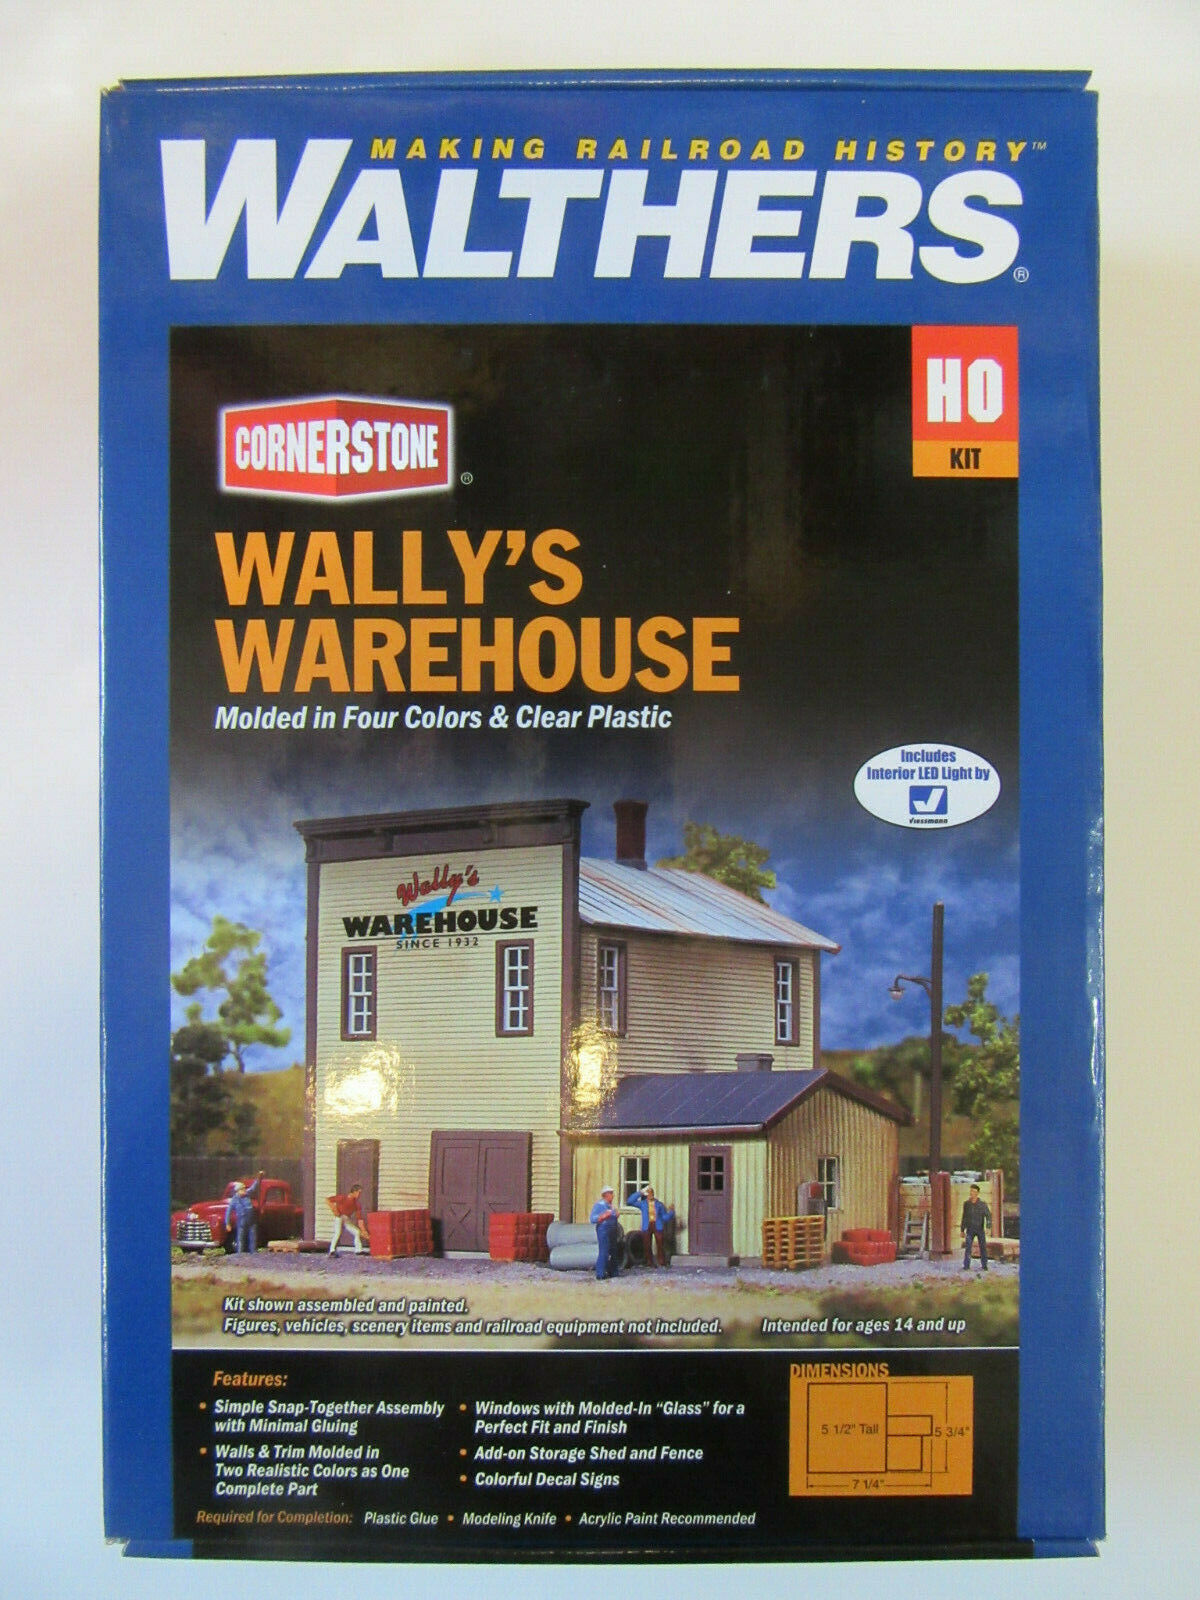 Walthers estados unidos 3654 Wally's Warehouse Western casa estados unidos kit plástico